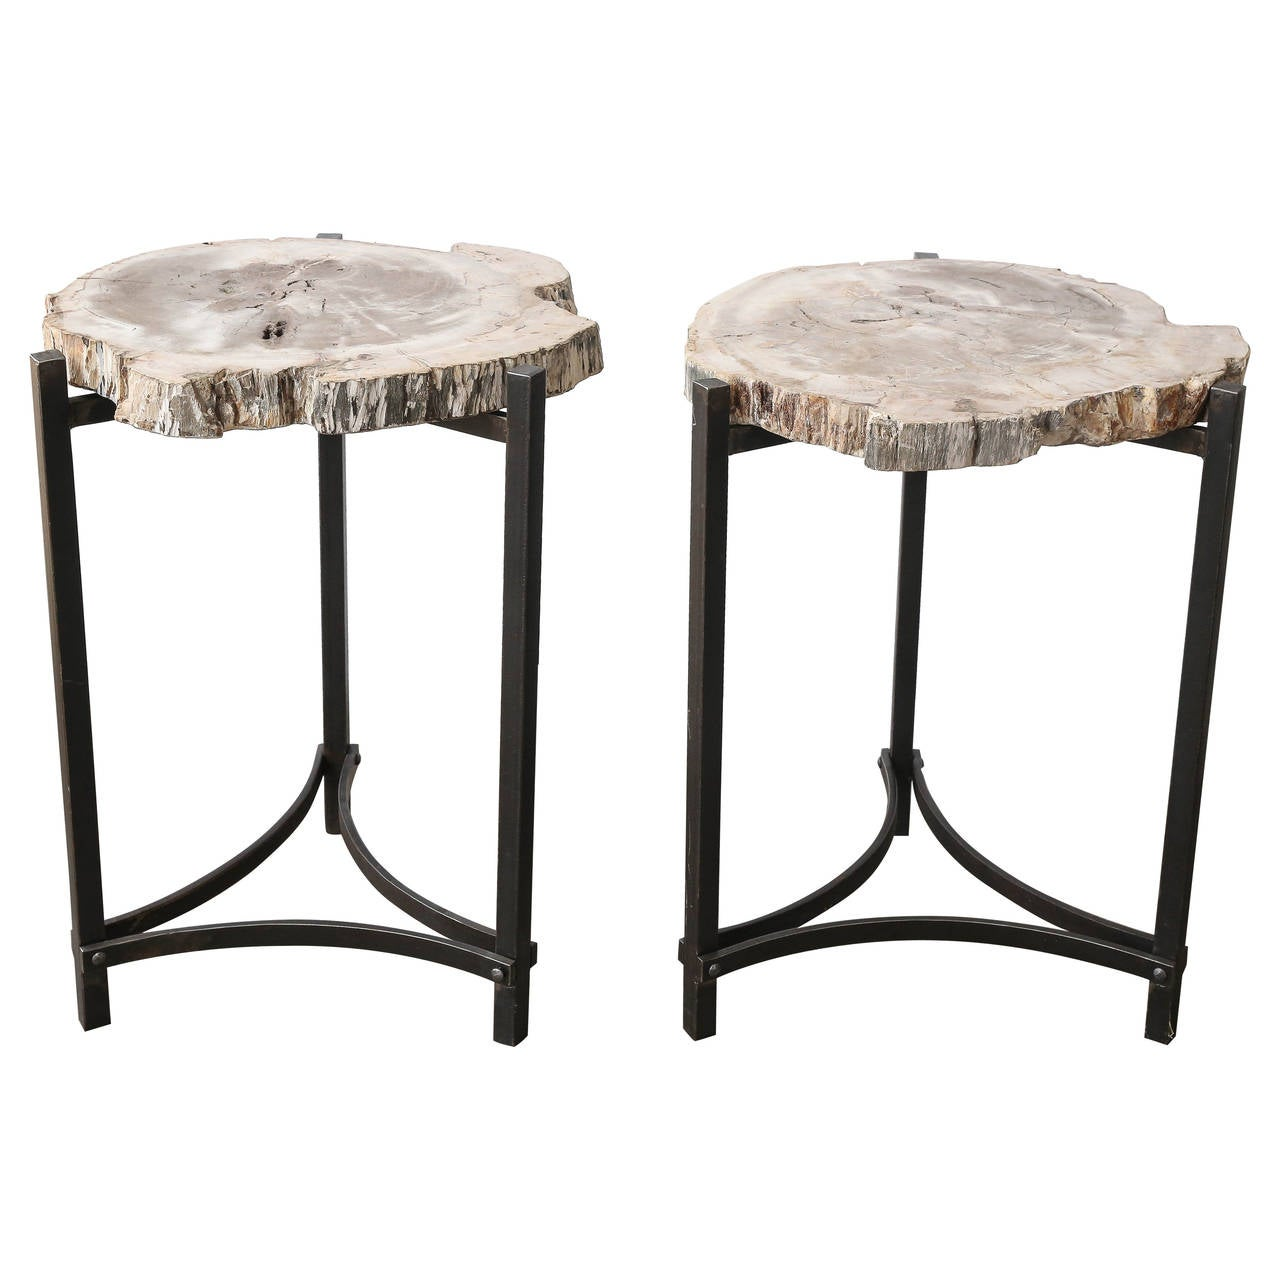 Petrified wood slab on iron base side table at 1stdibs for Side table base